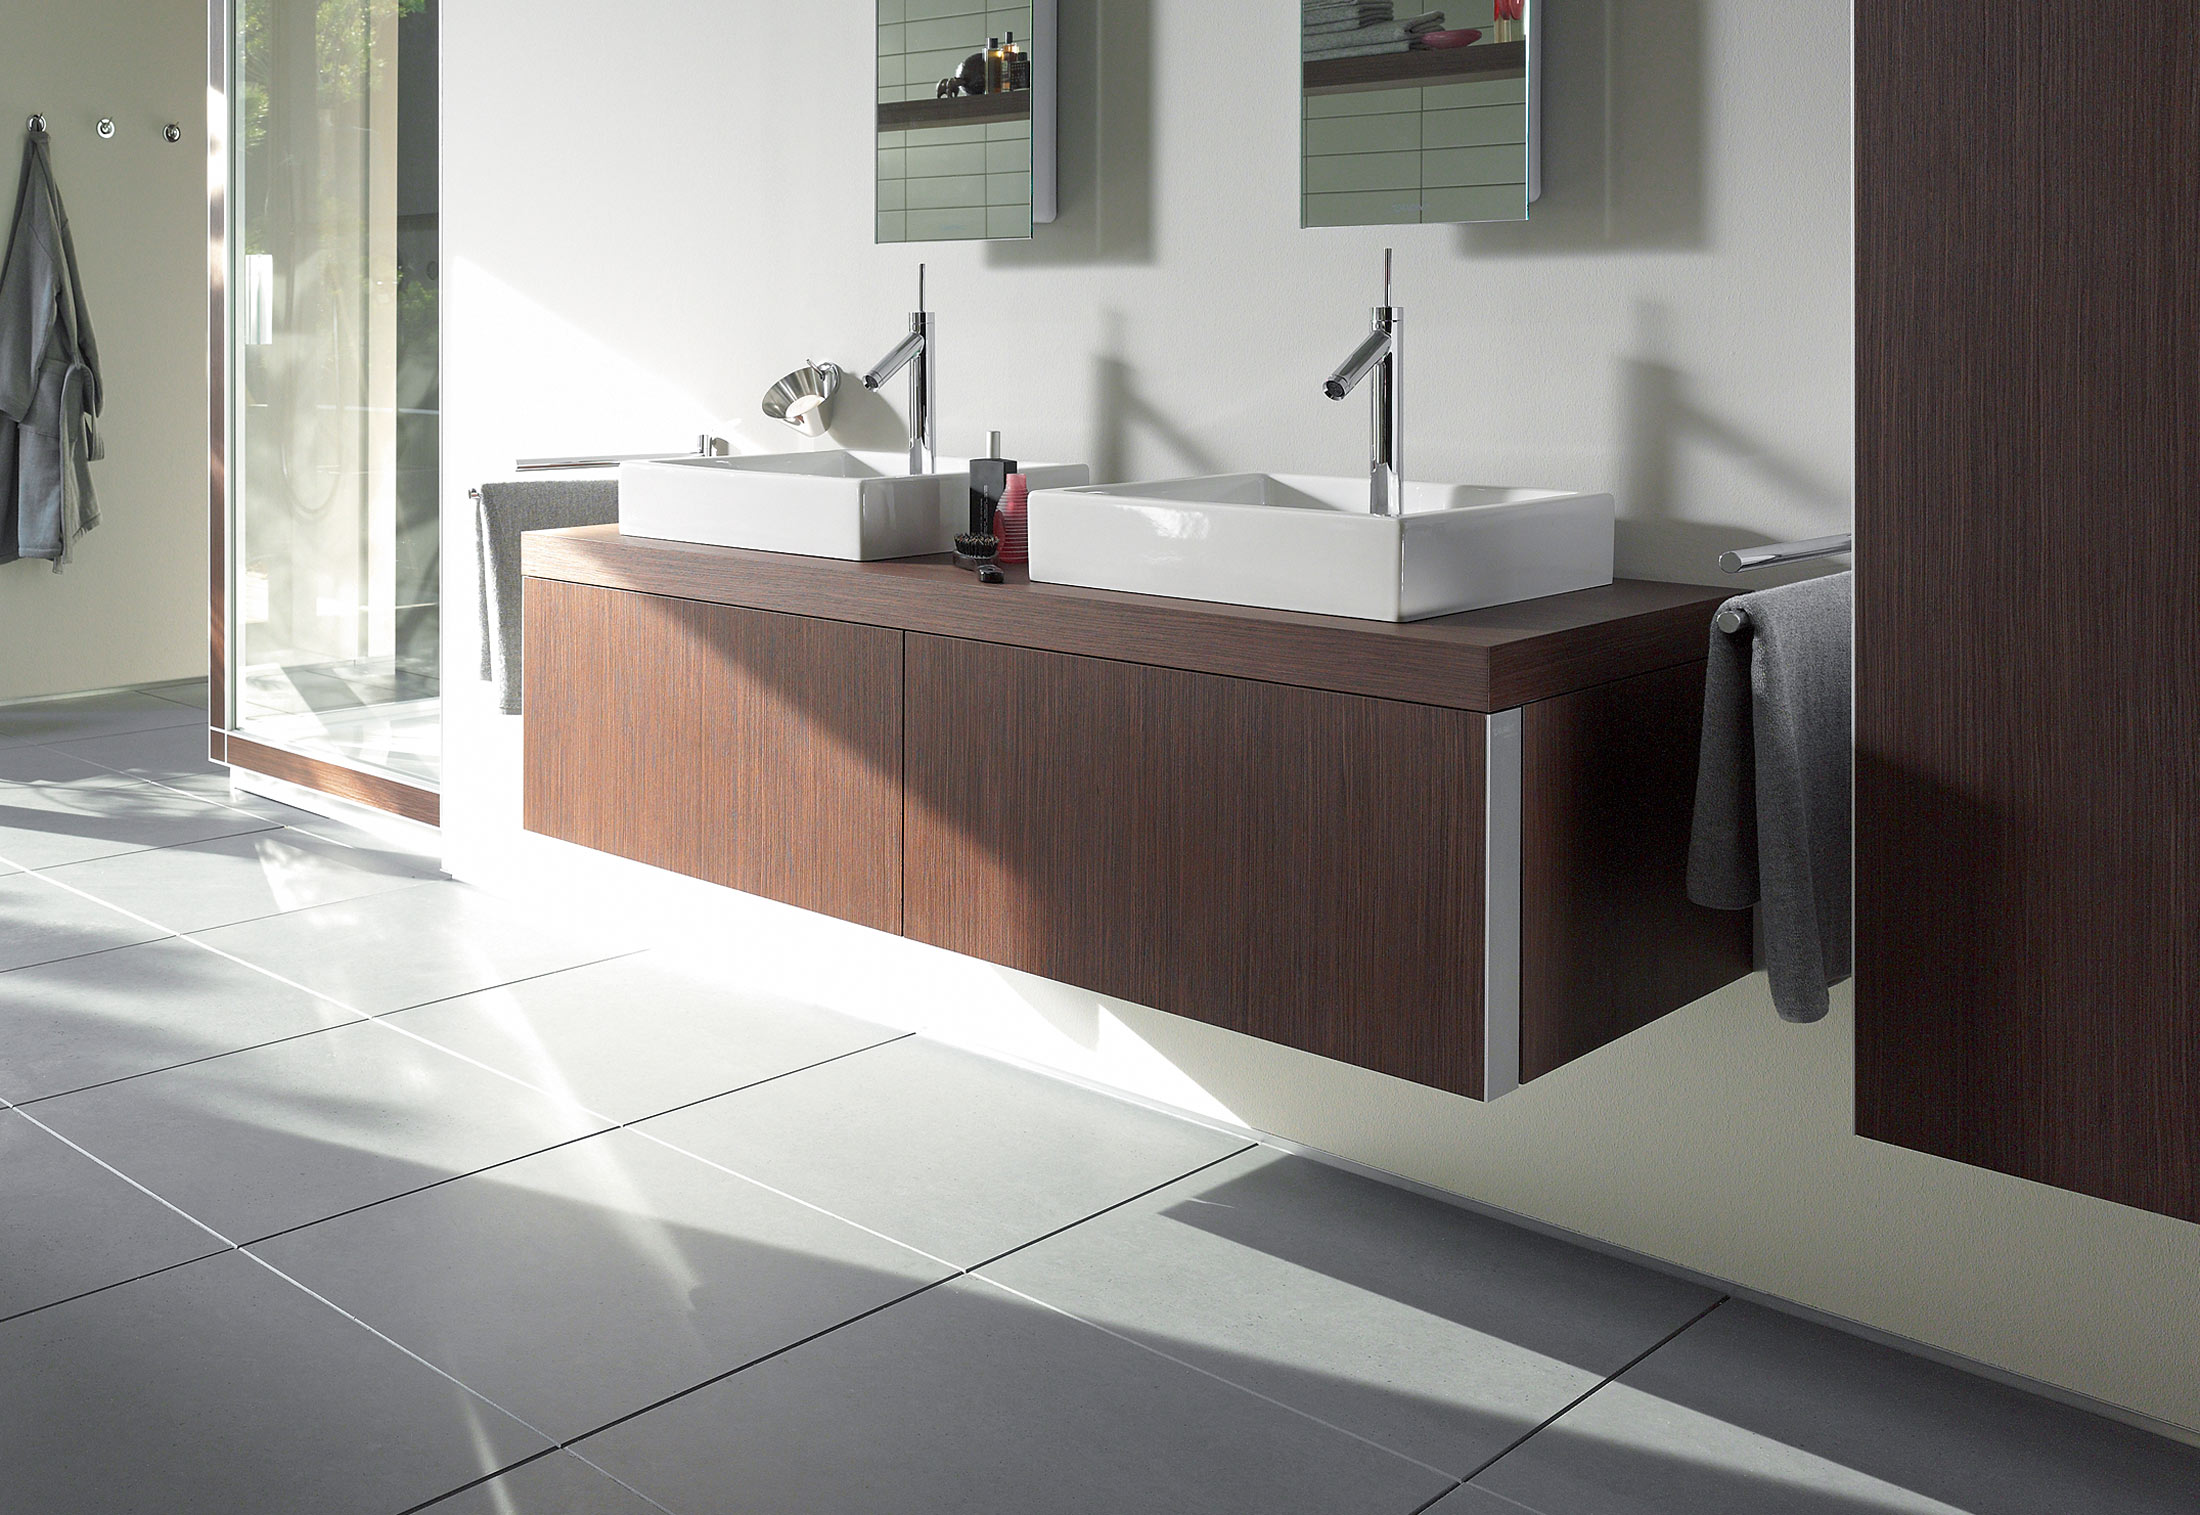 Starck washbasin double vanity unit by Duravit | STYLEPARK